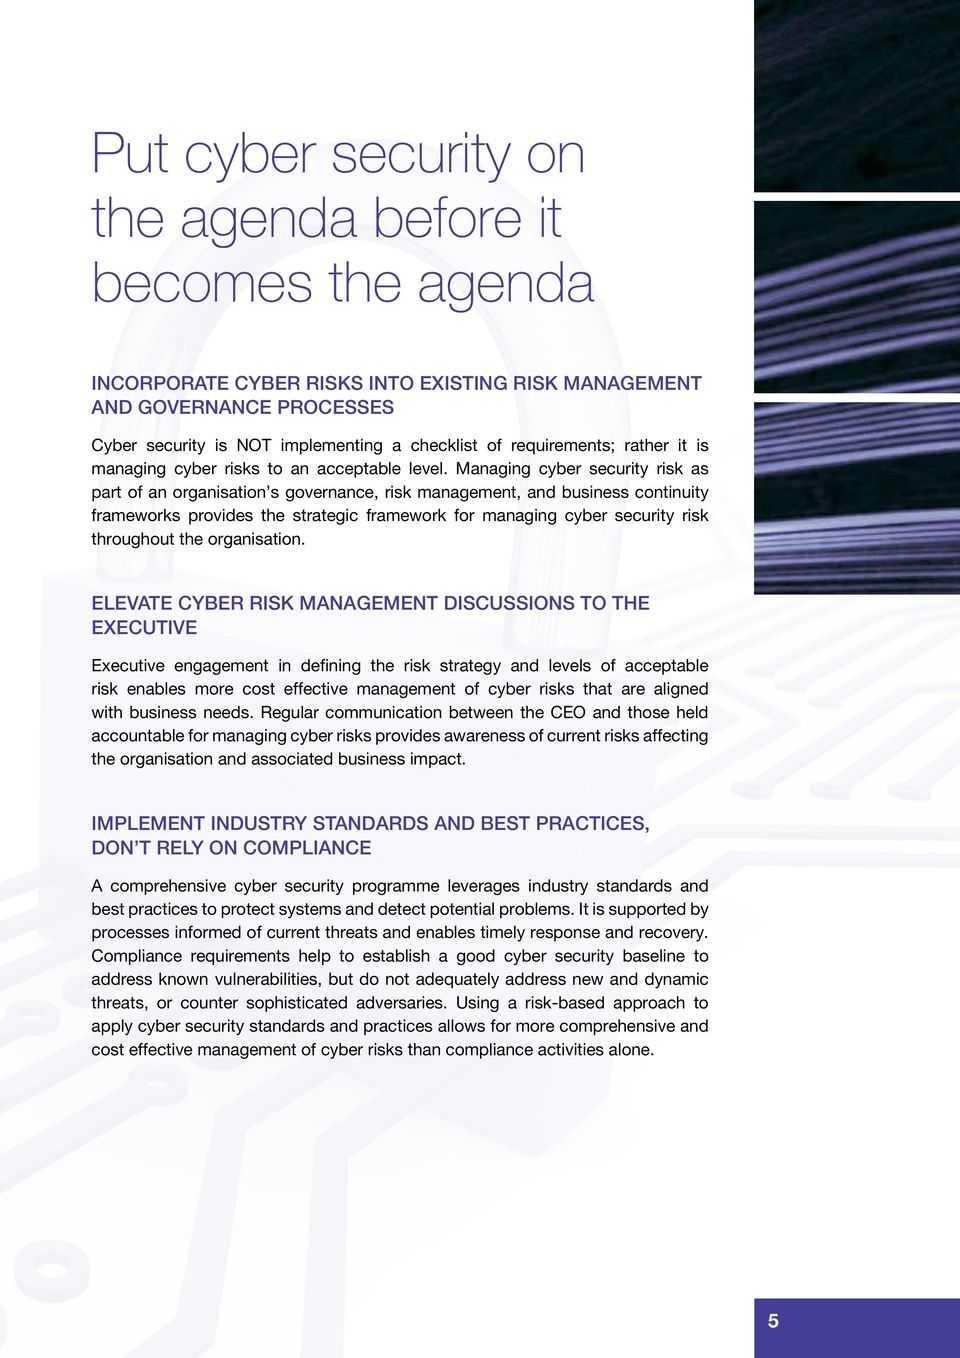 Managing cyber security risk as part of an organisation s governance, risk management, and business continuity frameworks provides the strategic framework for managing cyber security risk throughout